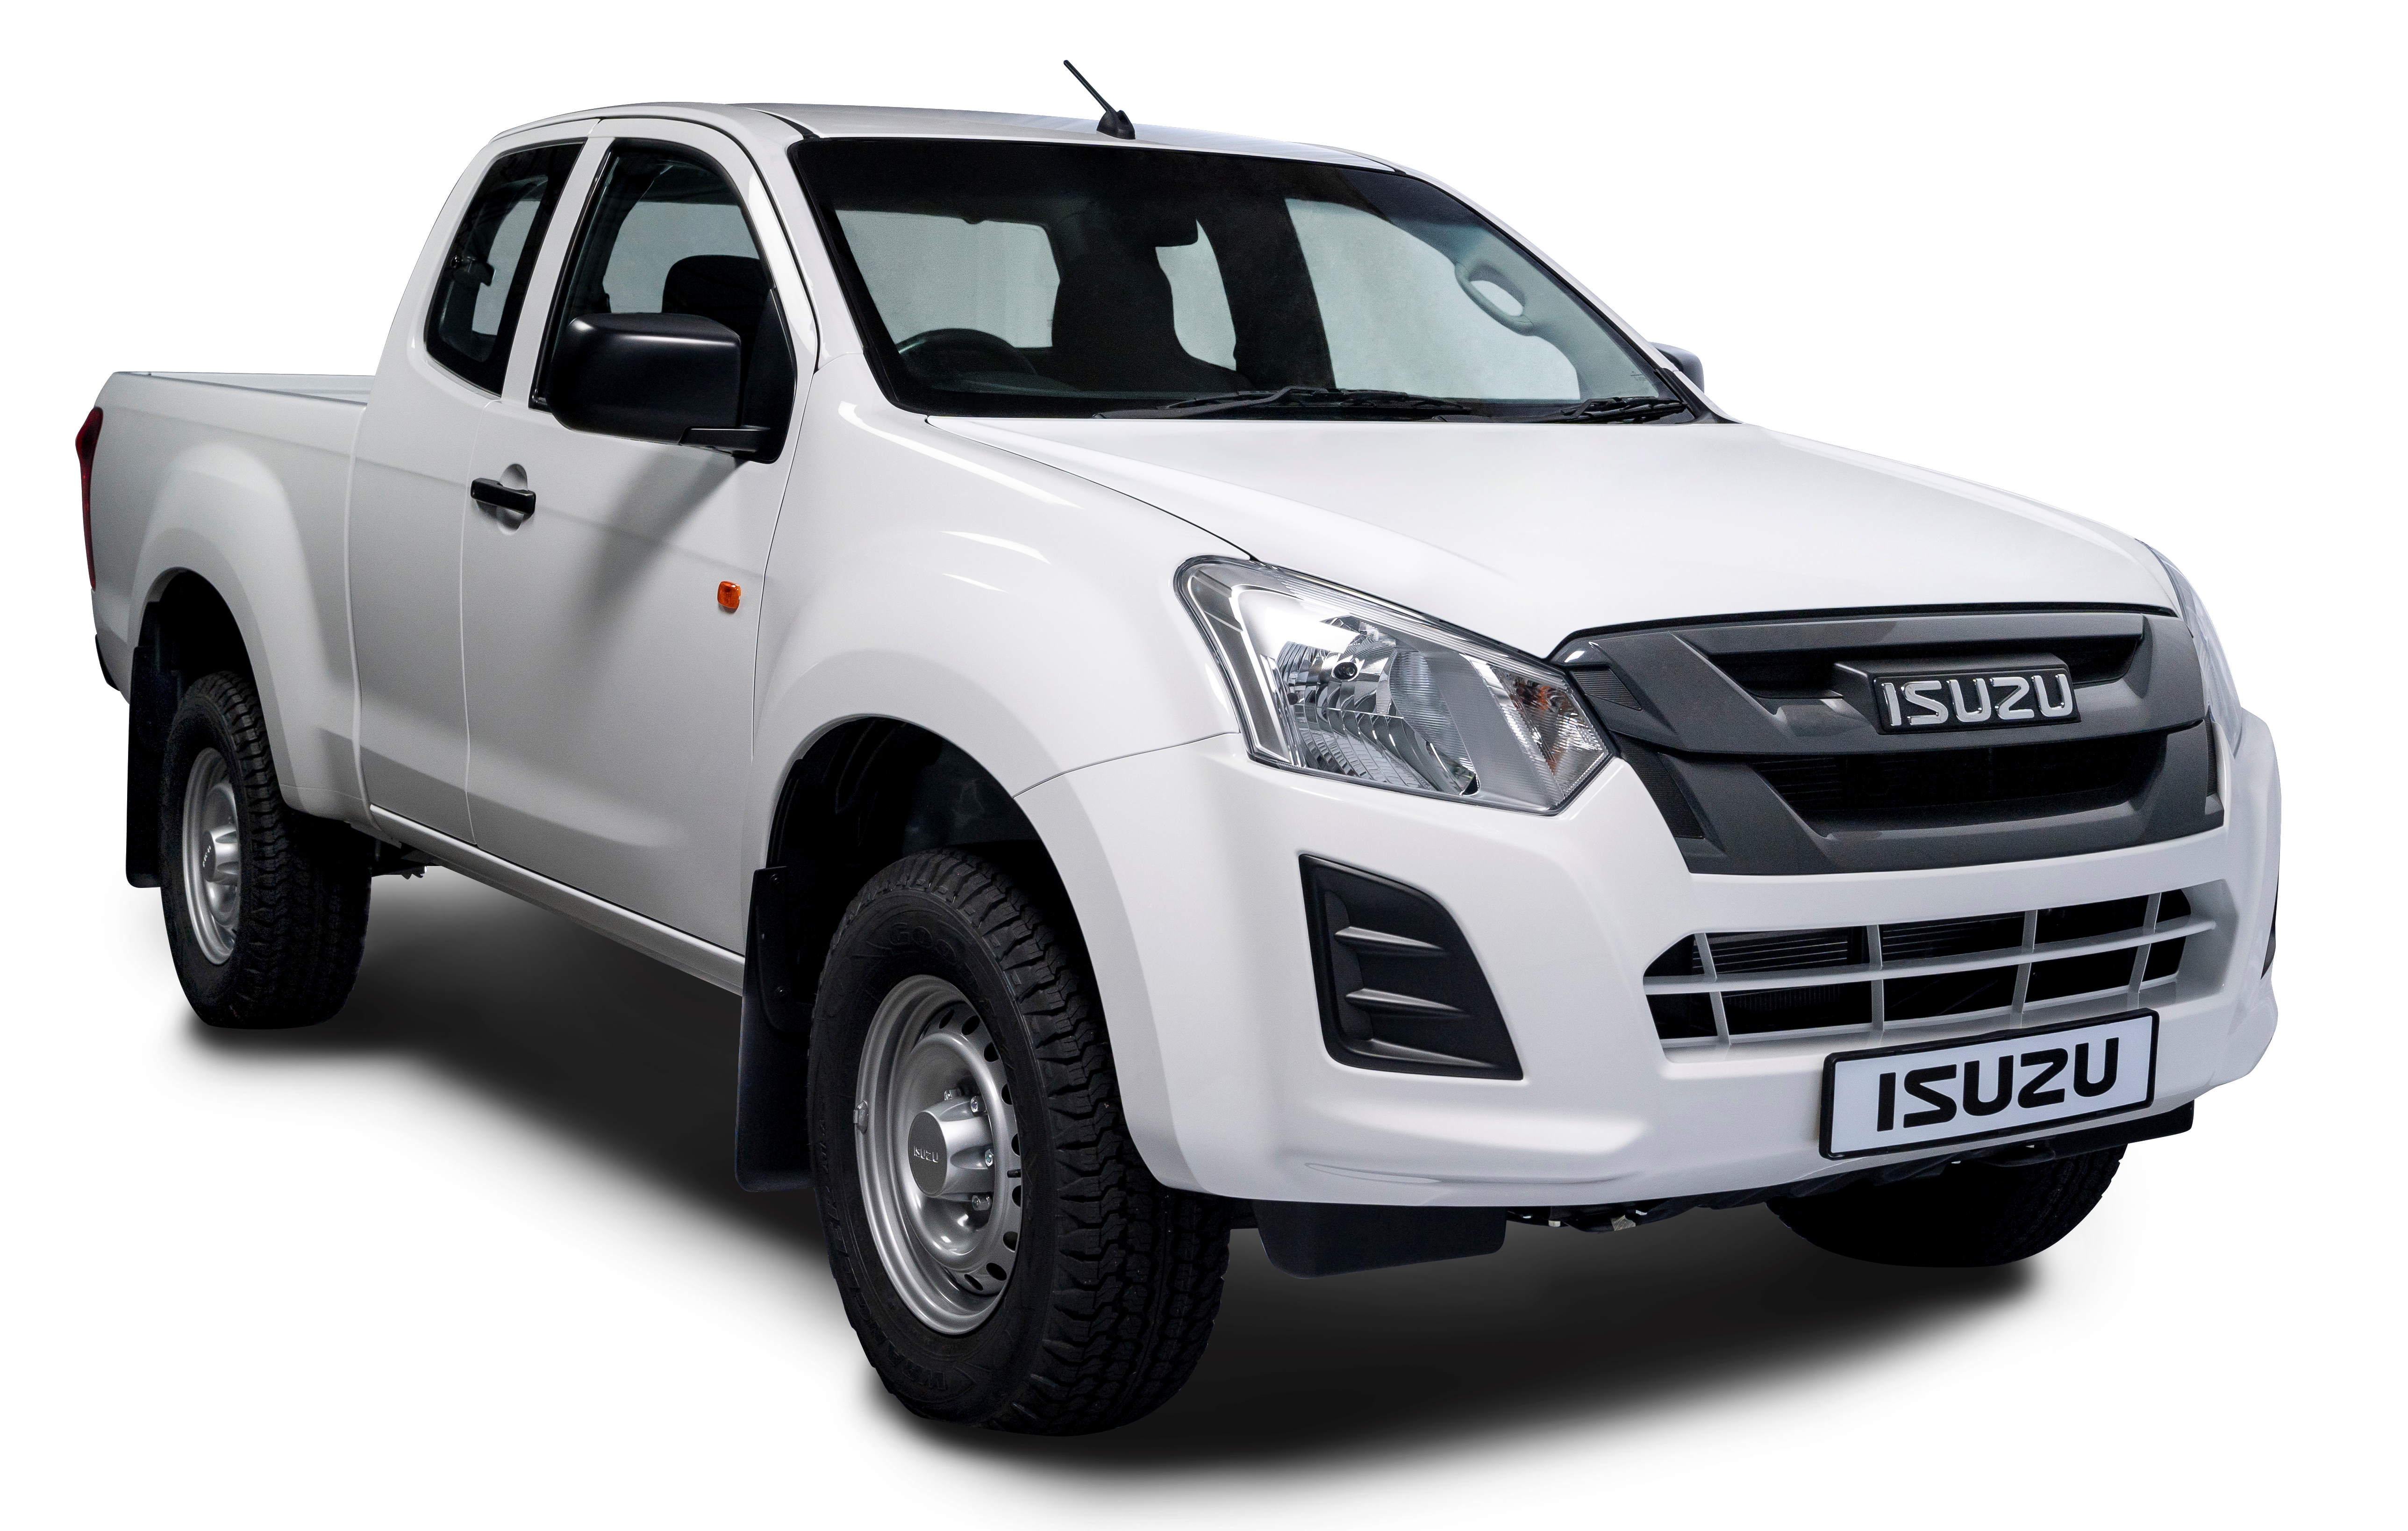 Introducing the D-MAX 250 HO Extended Cab Hi-Ride Automatic